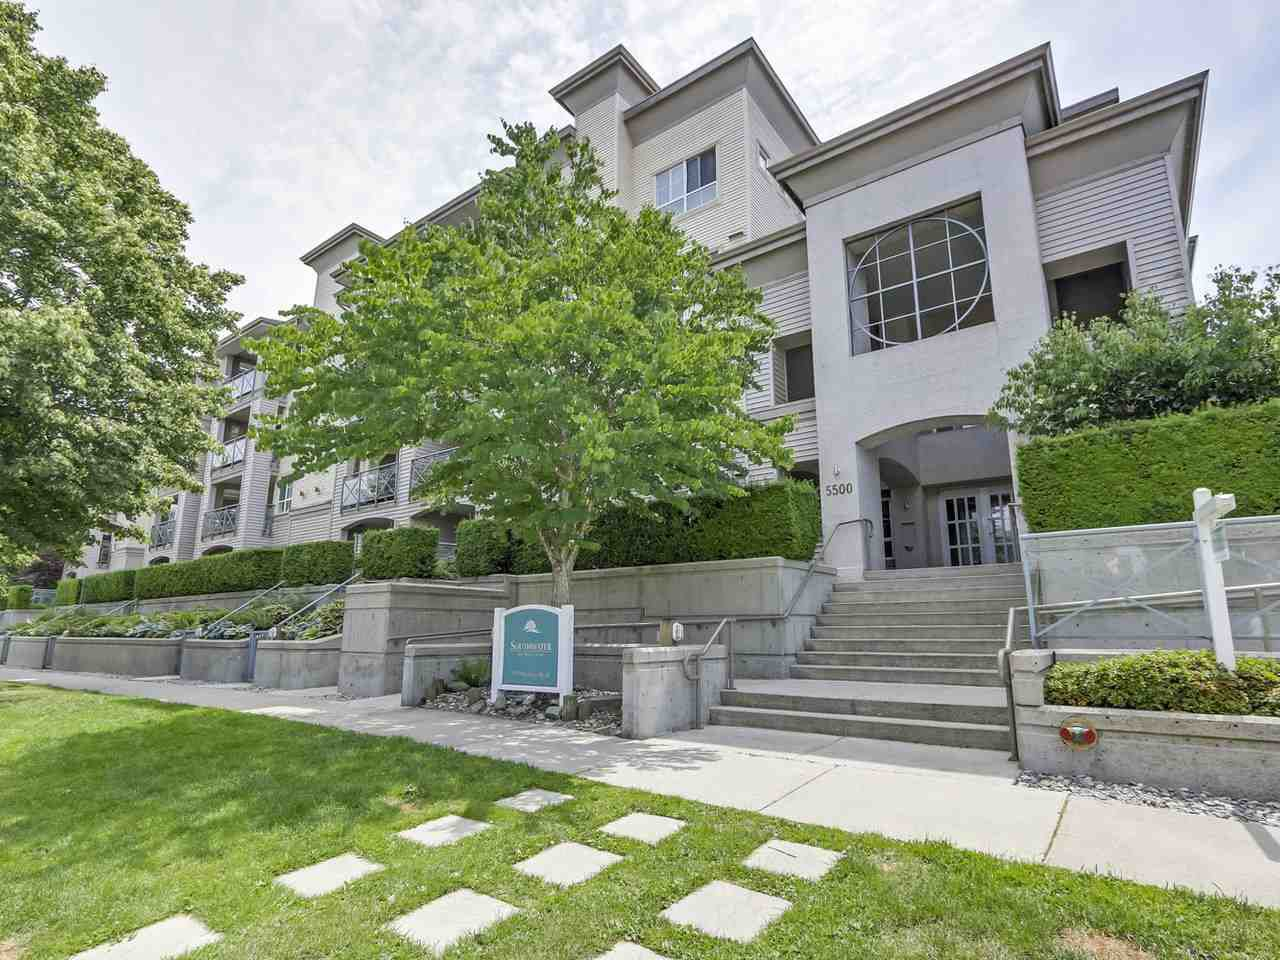 """Main Photo: 402 5500 ANDREWS Road in Richmond: Steveston South Condo for sale in """"SOUTH WATER"""" : MLS®# R2283609"""